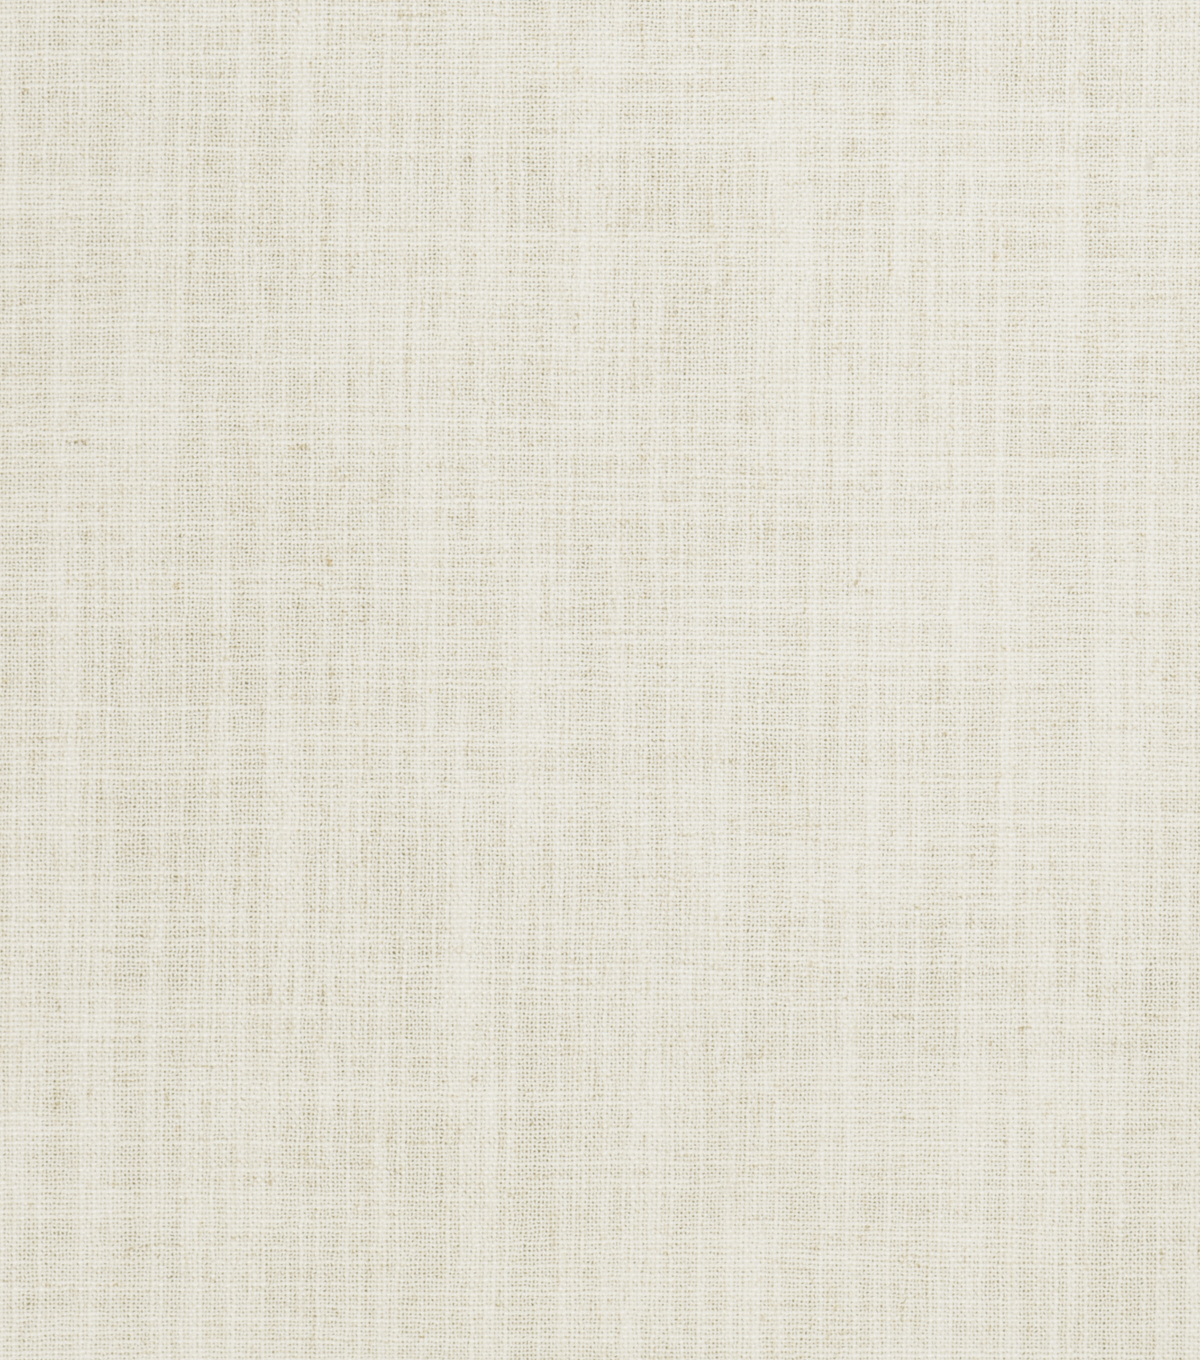 Home Decor 8x8 Fabric Swatch-Eaton Square Reagan Angora